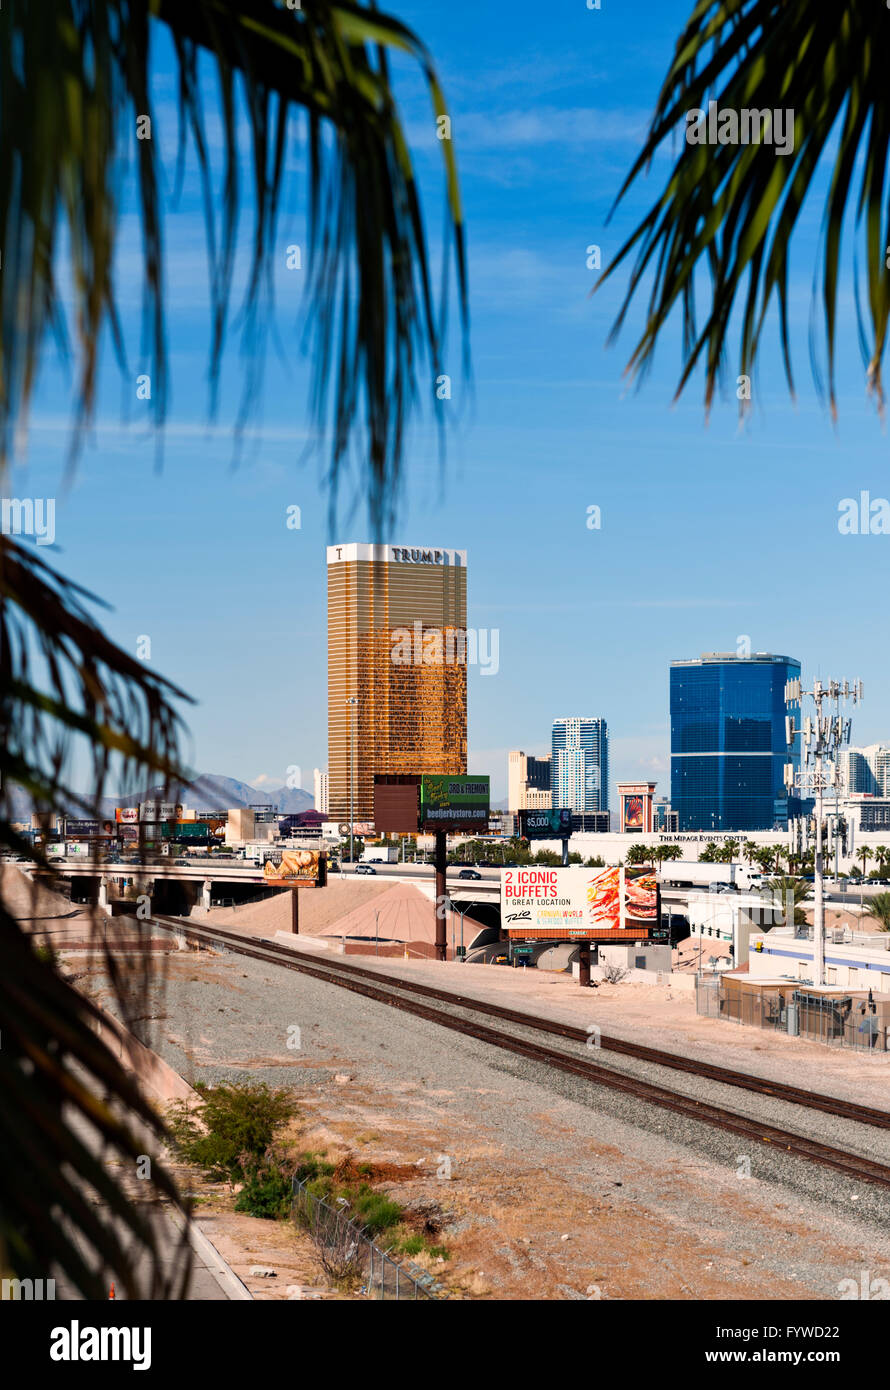 Trump Tower In Las Vegas, Nevada Stock Photo